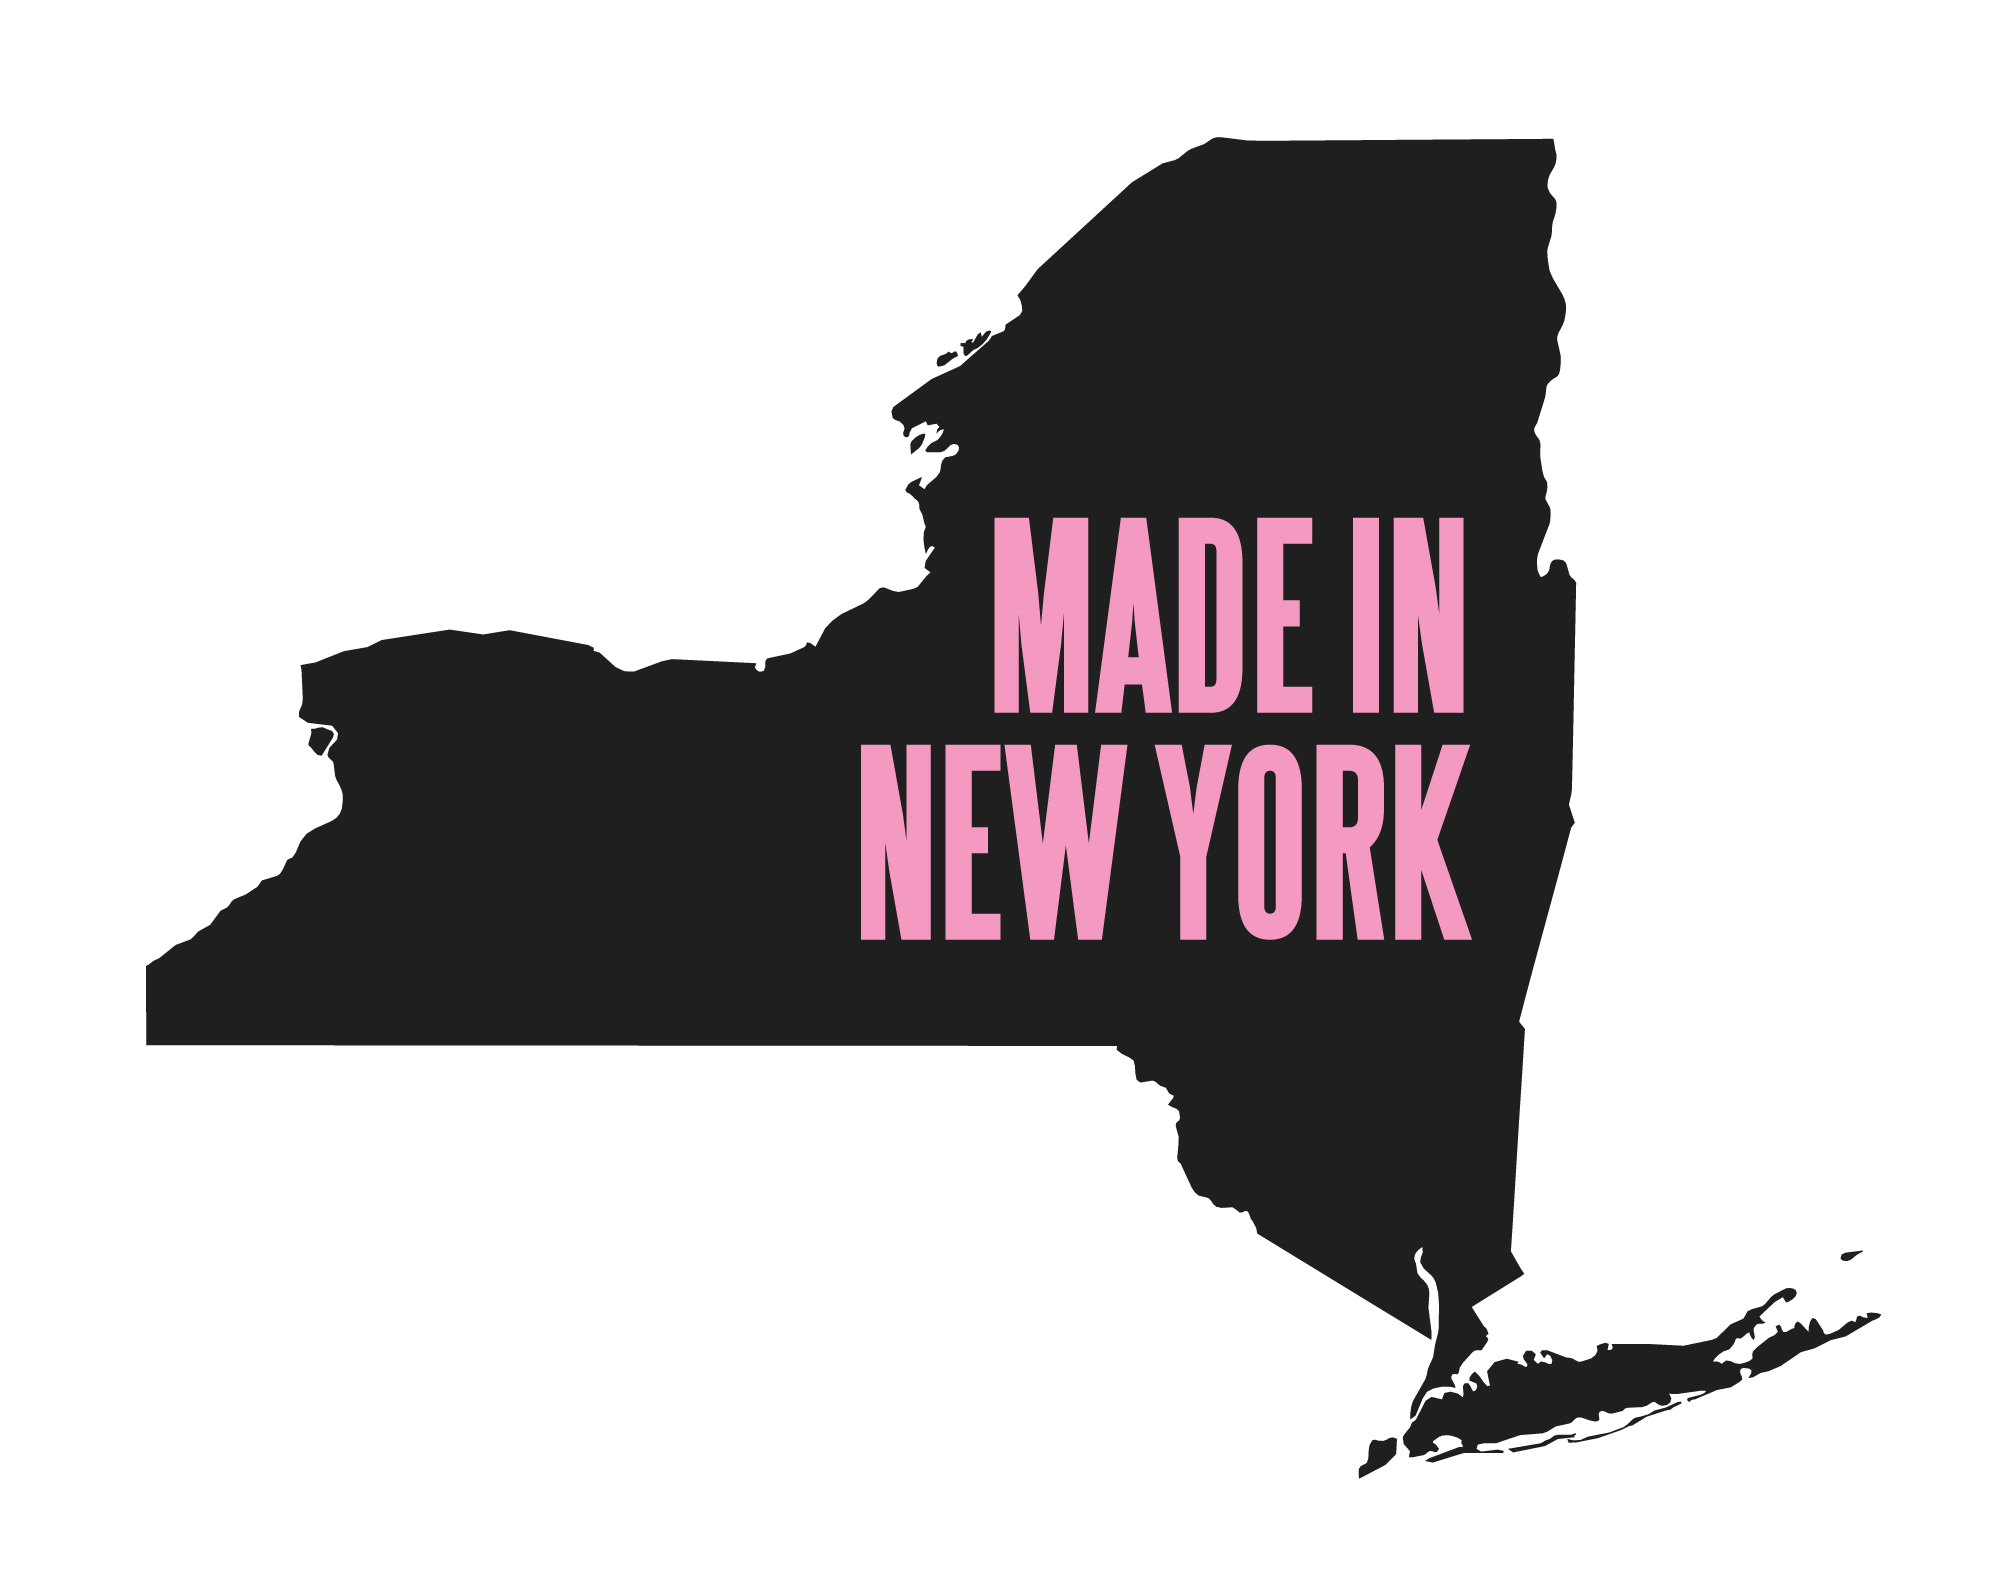 made-in-nyc.png